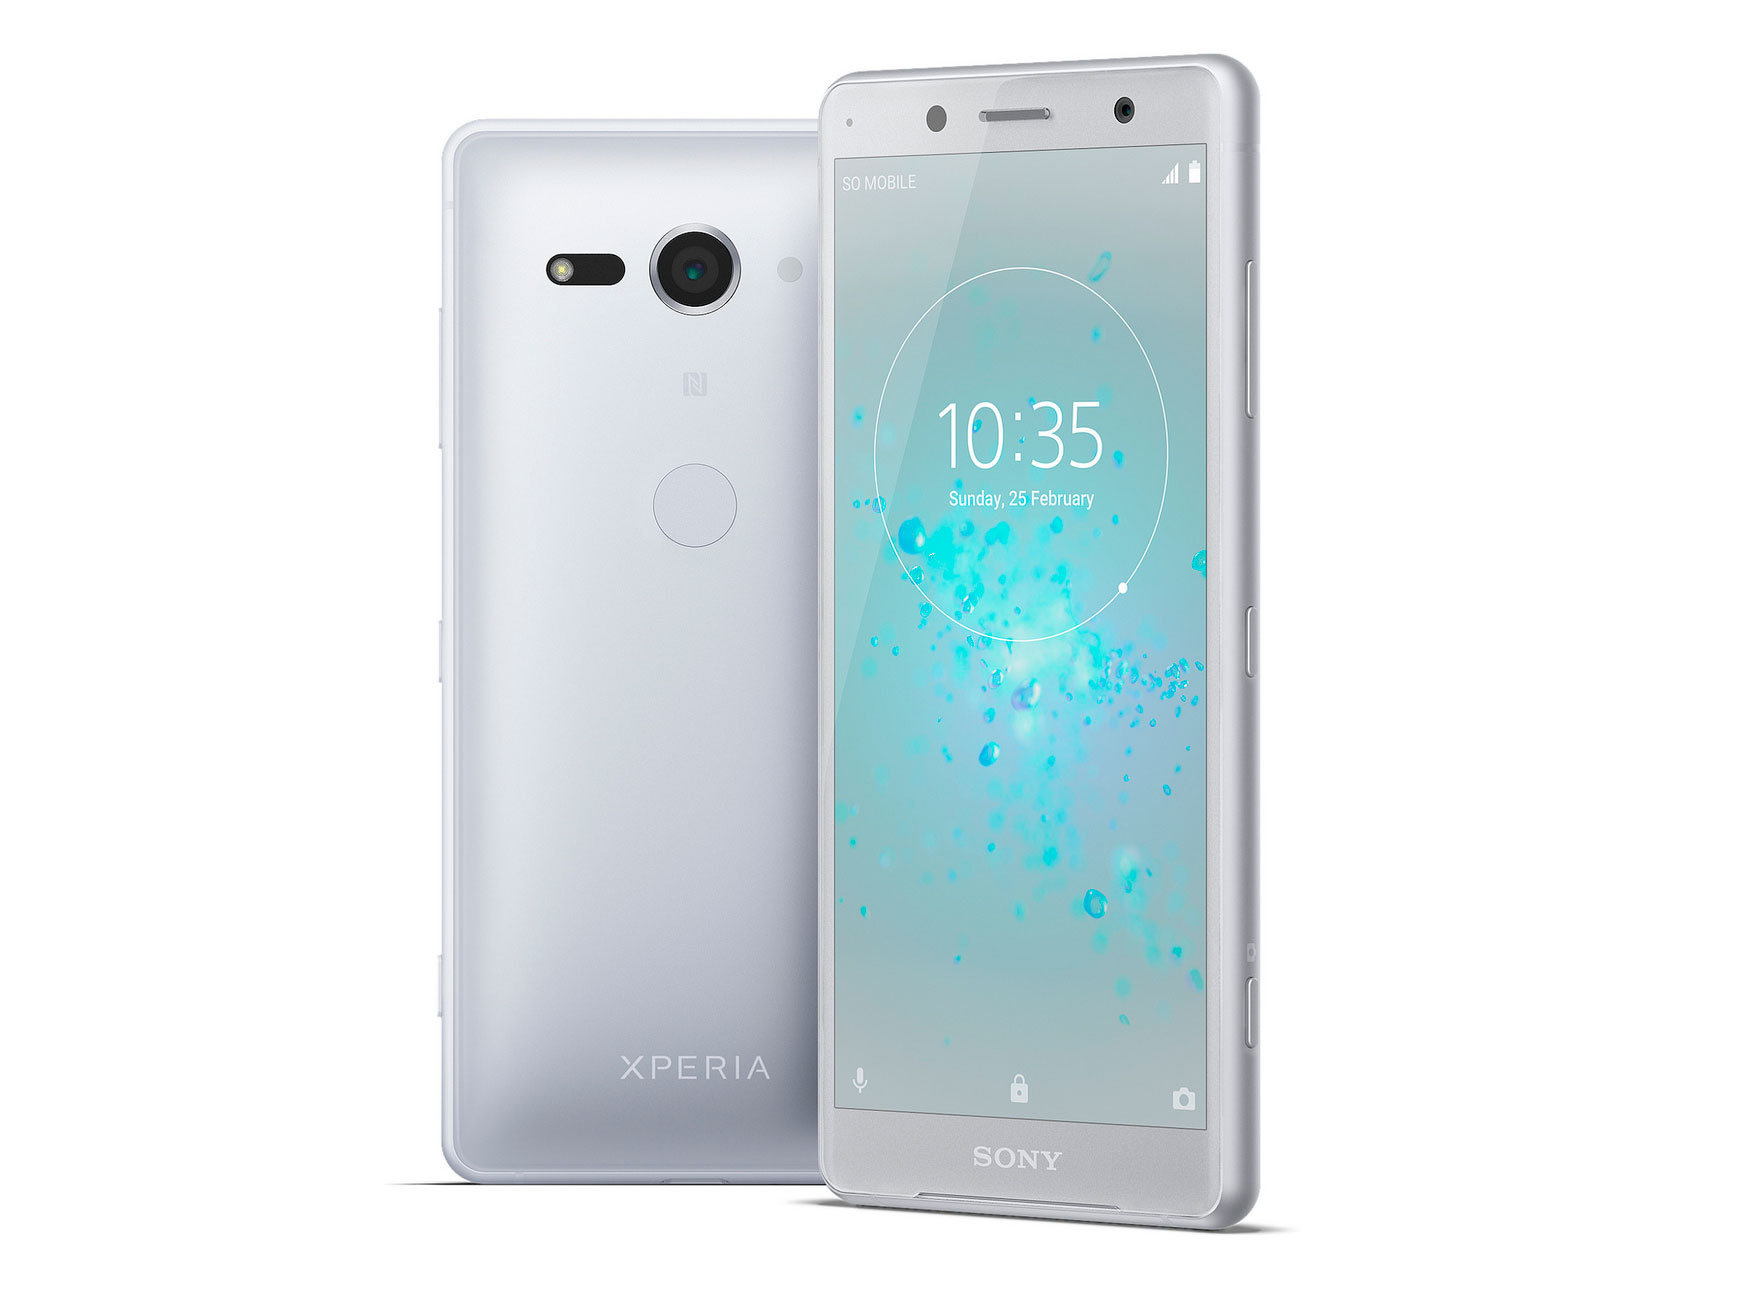 Sony Xperia XZ2 brings 4K HDR video to smartphones: Digital